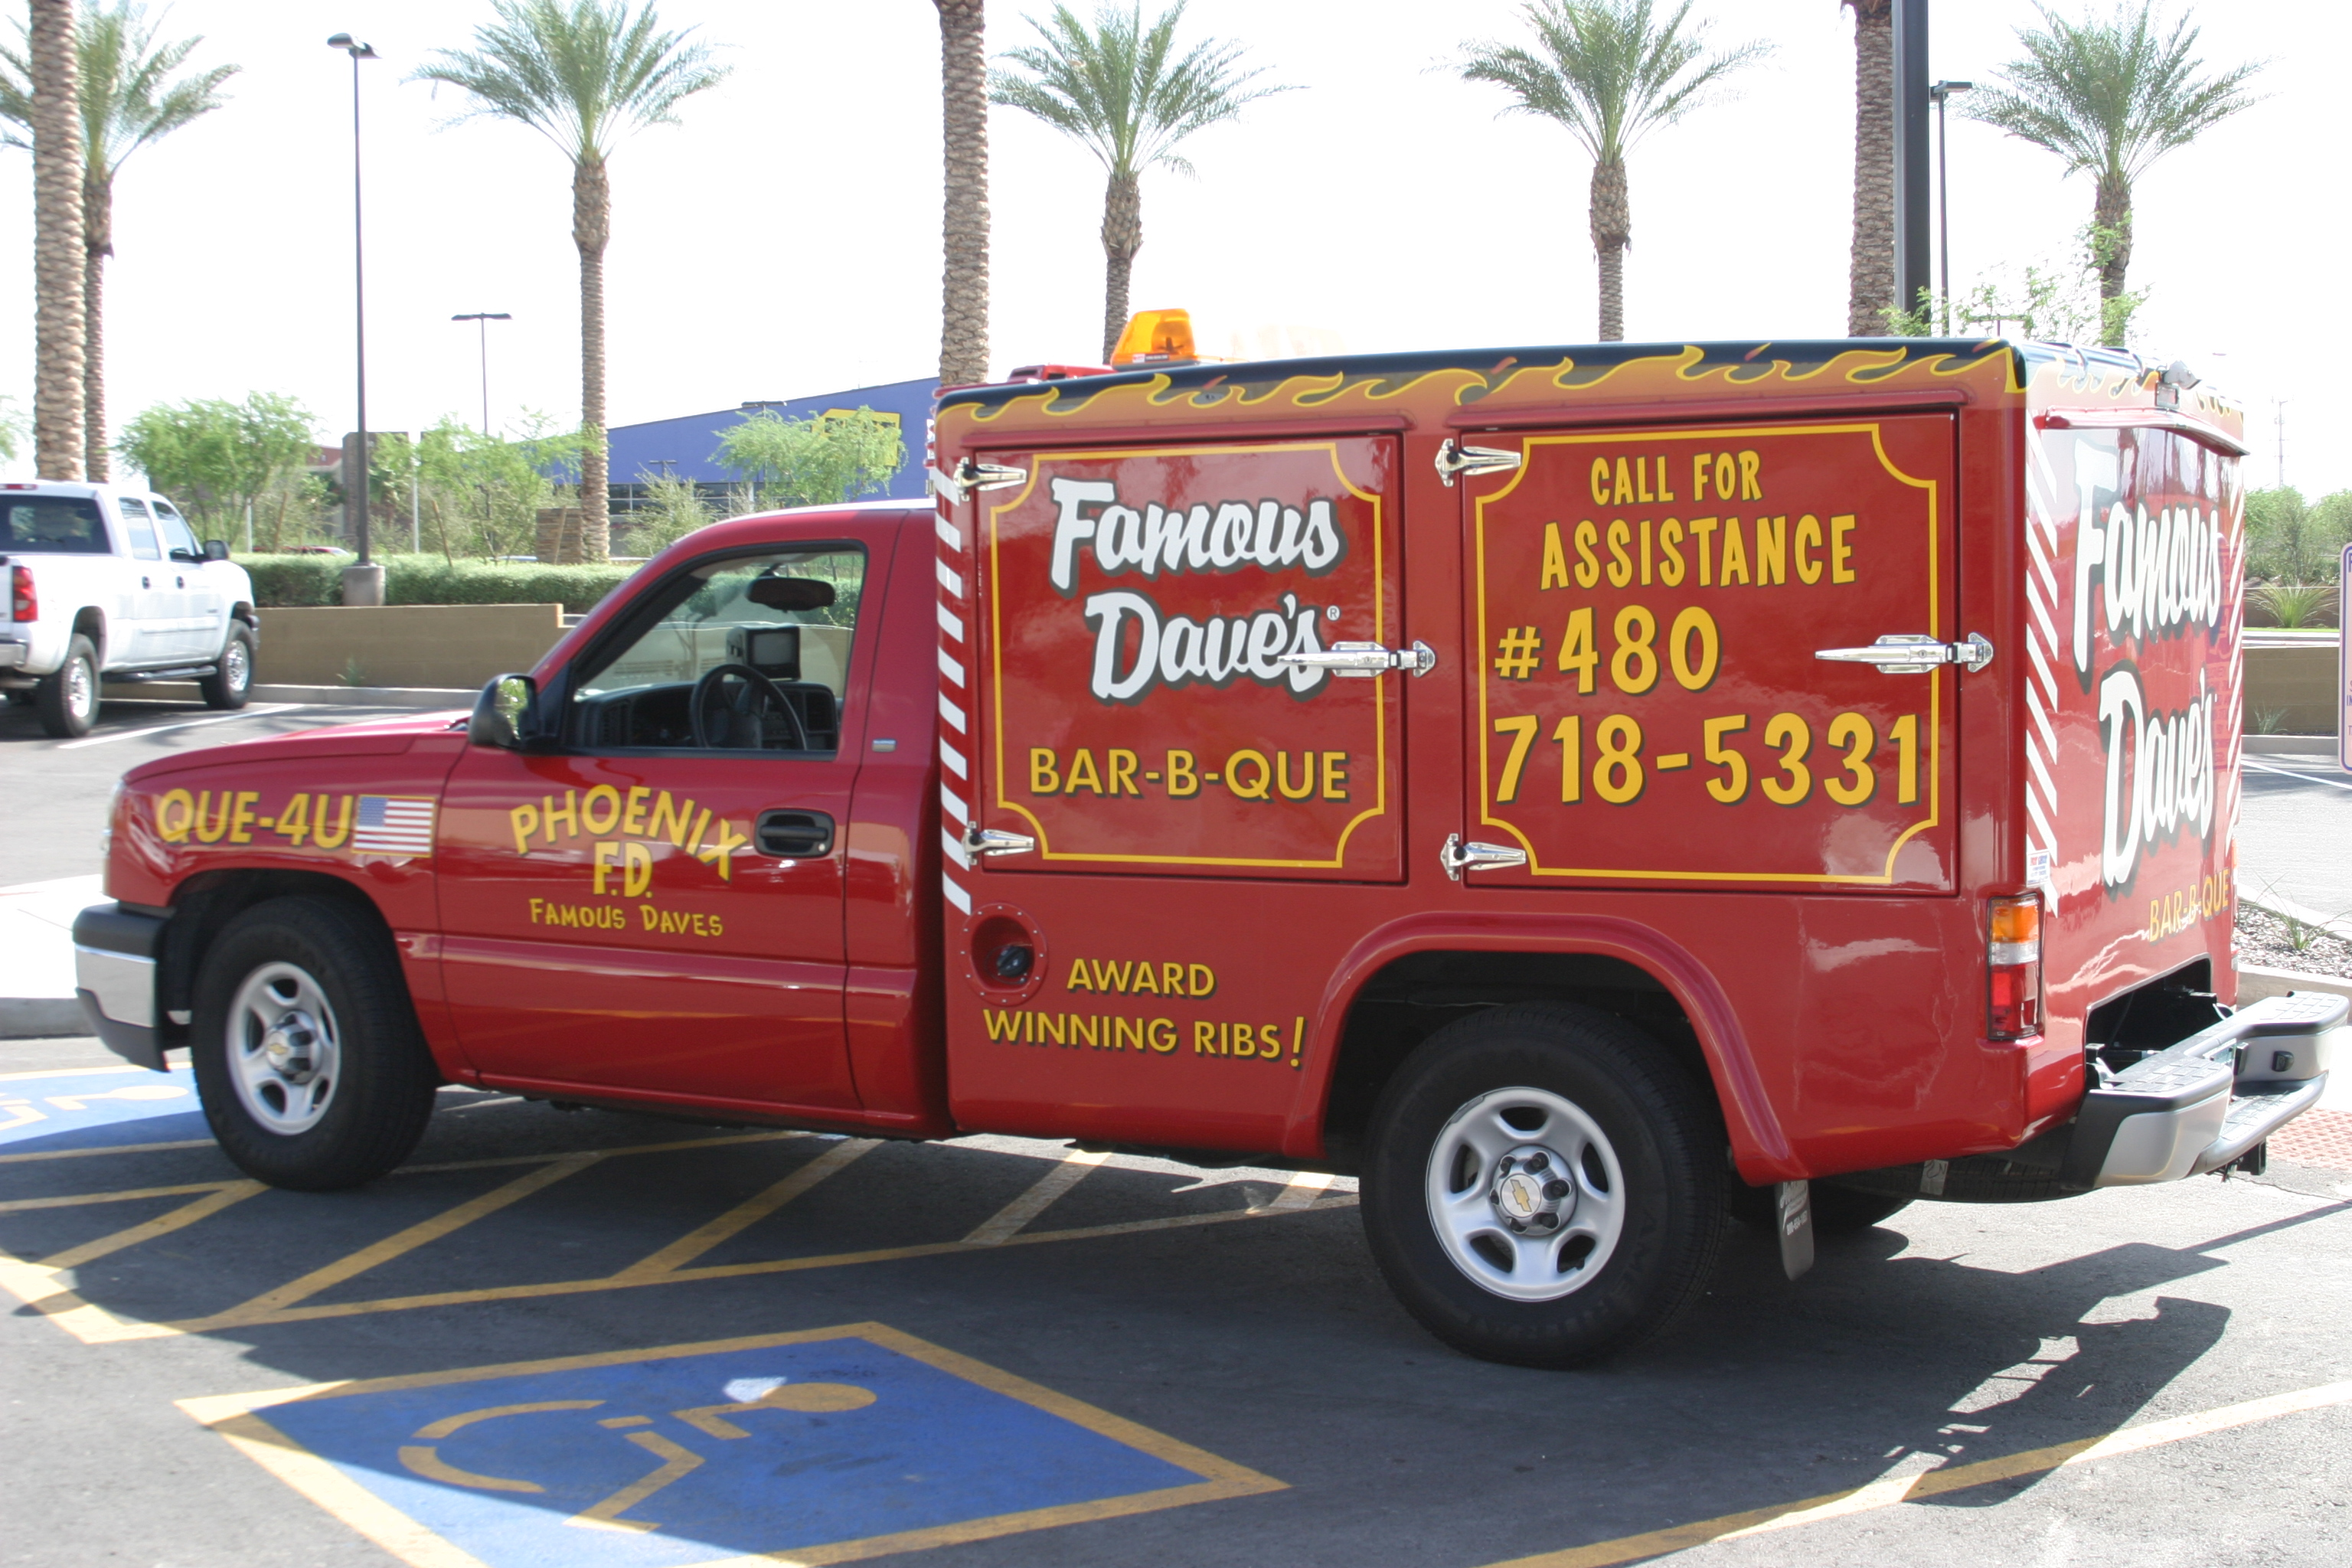 Look for a Famous Dave's Catering Truck on June 2!